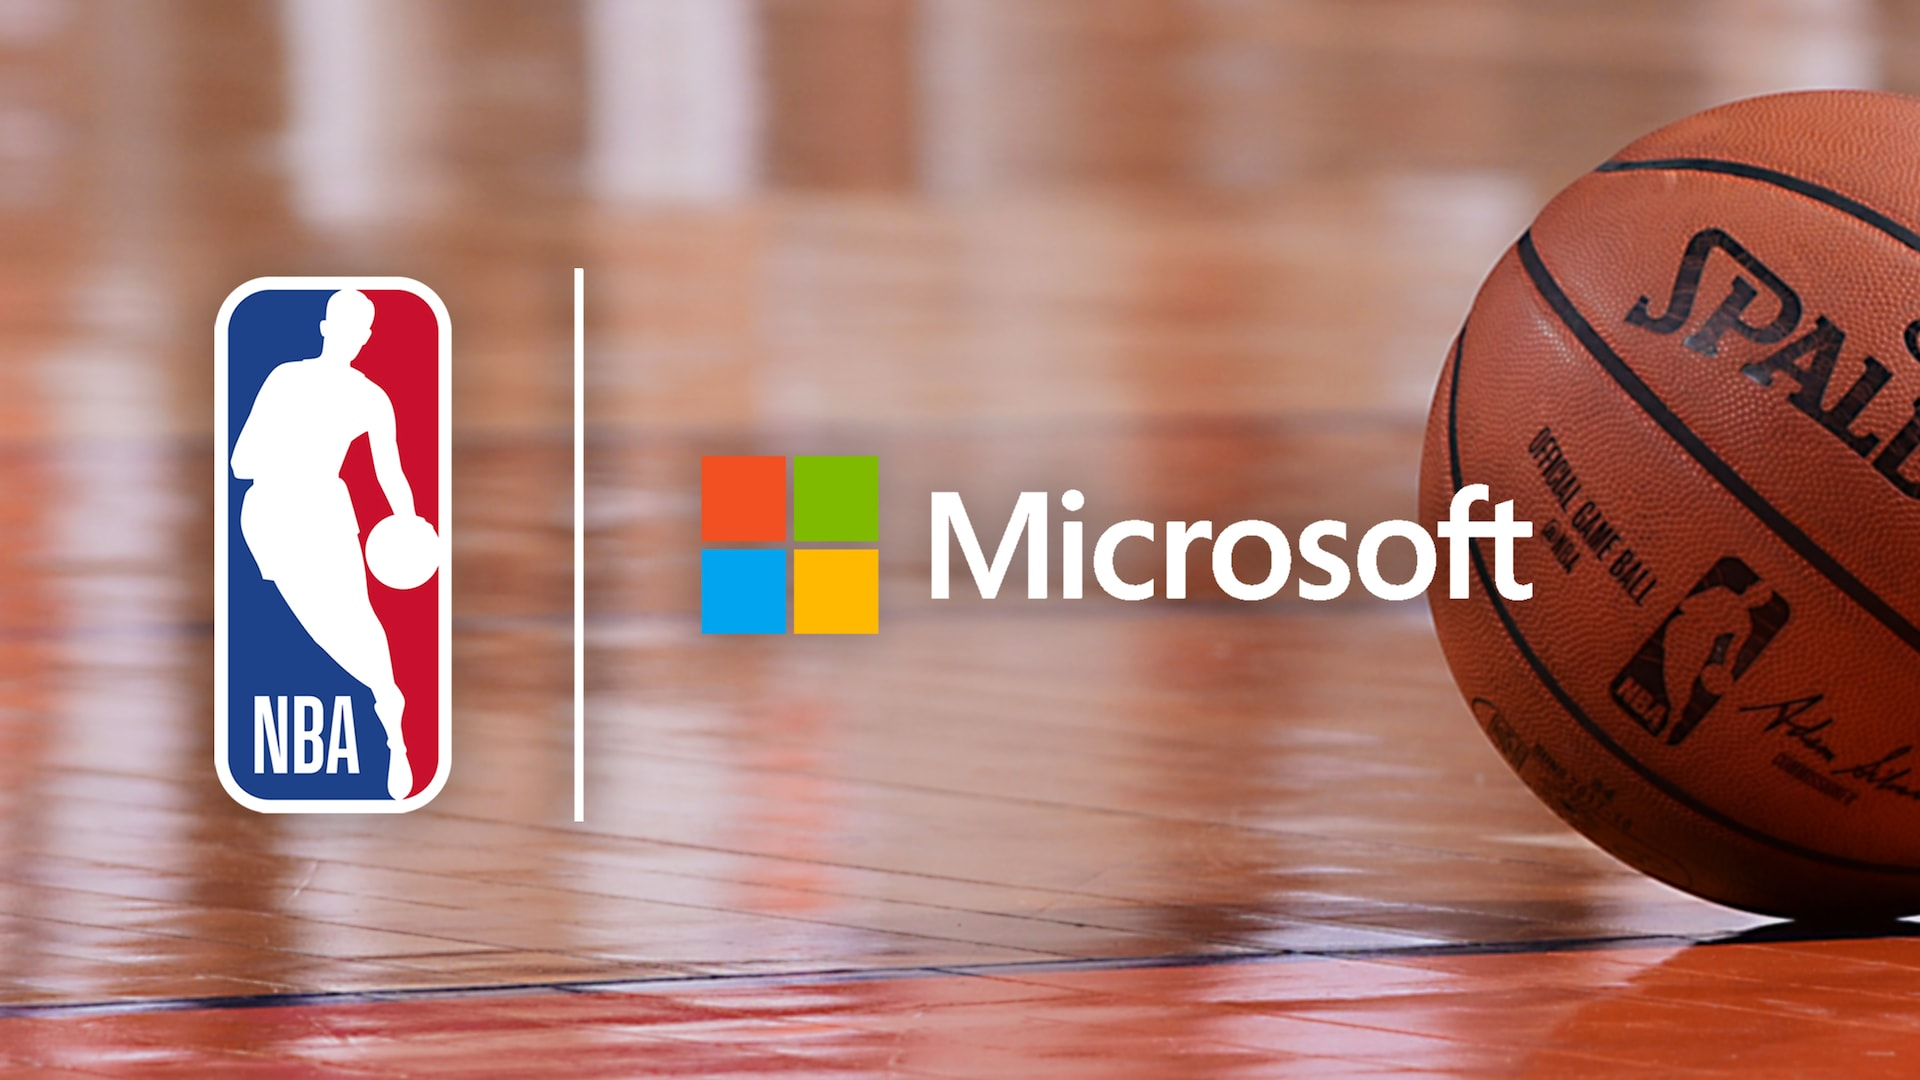 NBA, Microsoft team up to redefine the fan experience